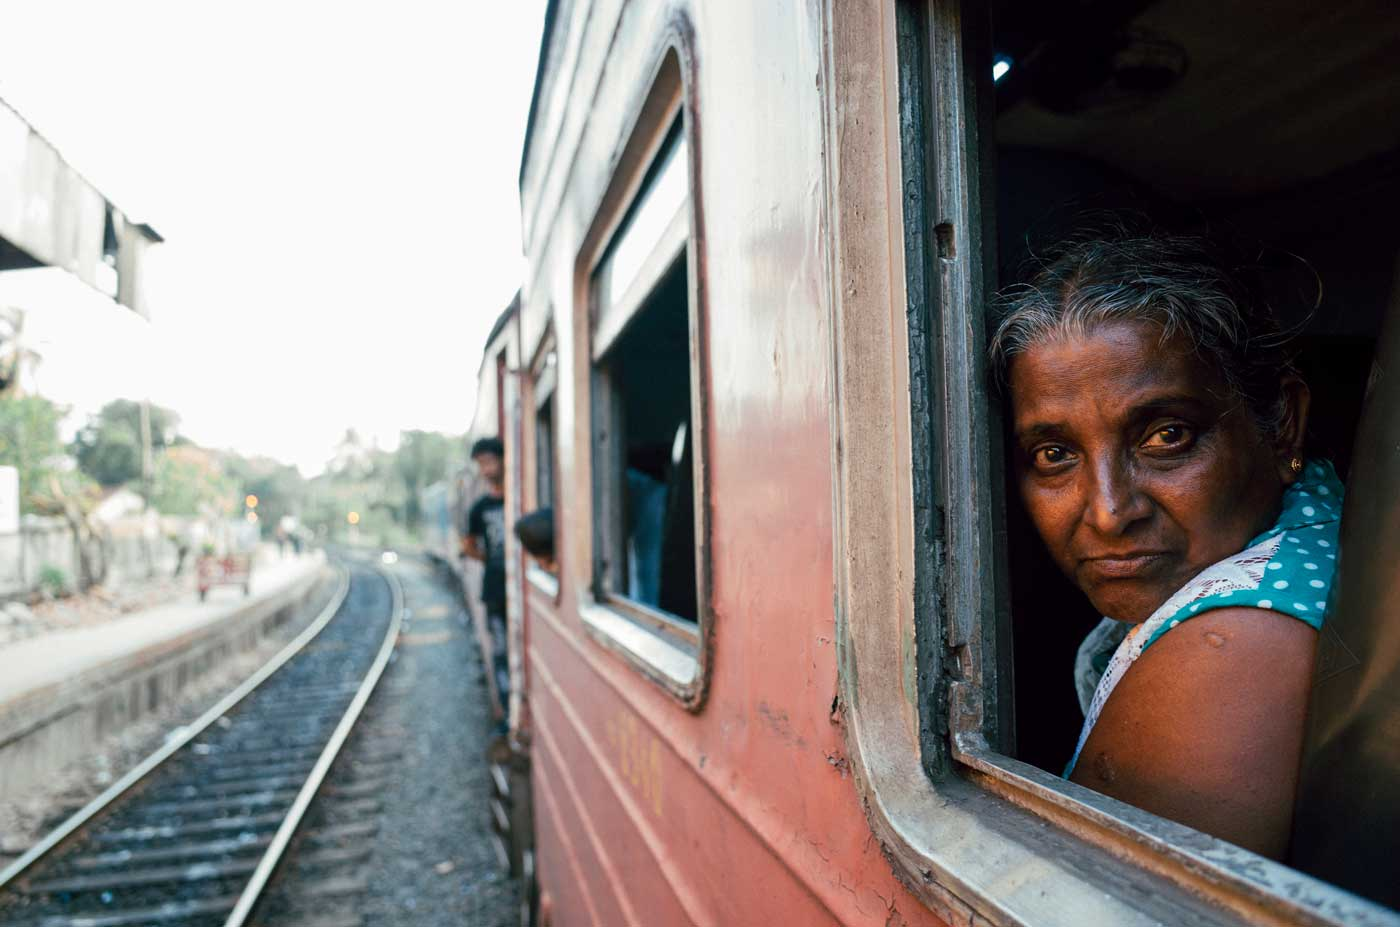 ricoh-gr-II-III-review-camera-point-and-shoot-28mm-colombo-portrait-local-taking-train-sri-lanka-travel-backpacking-lady-looking-at-me